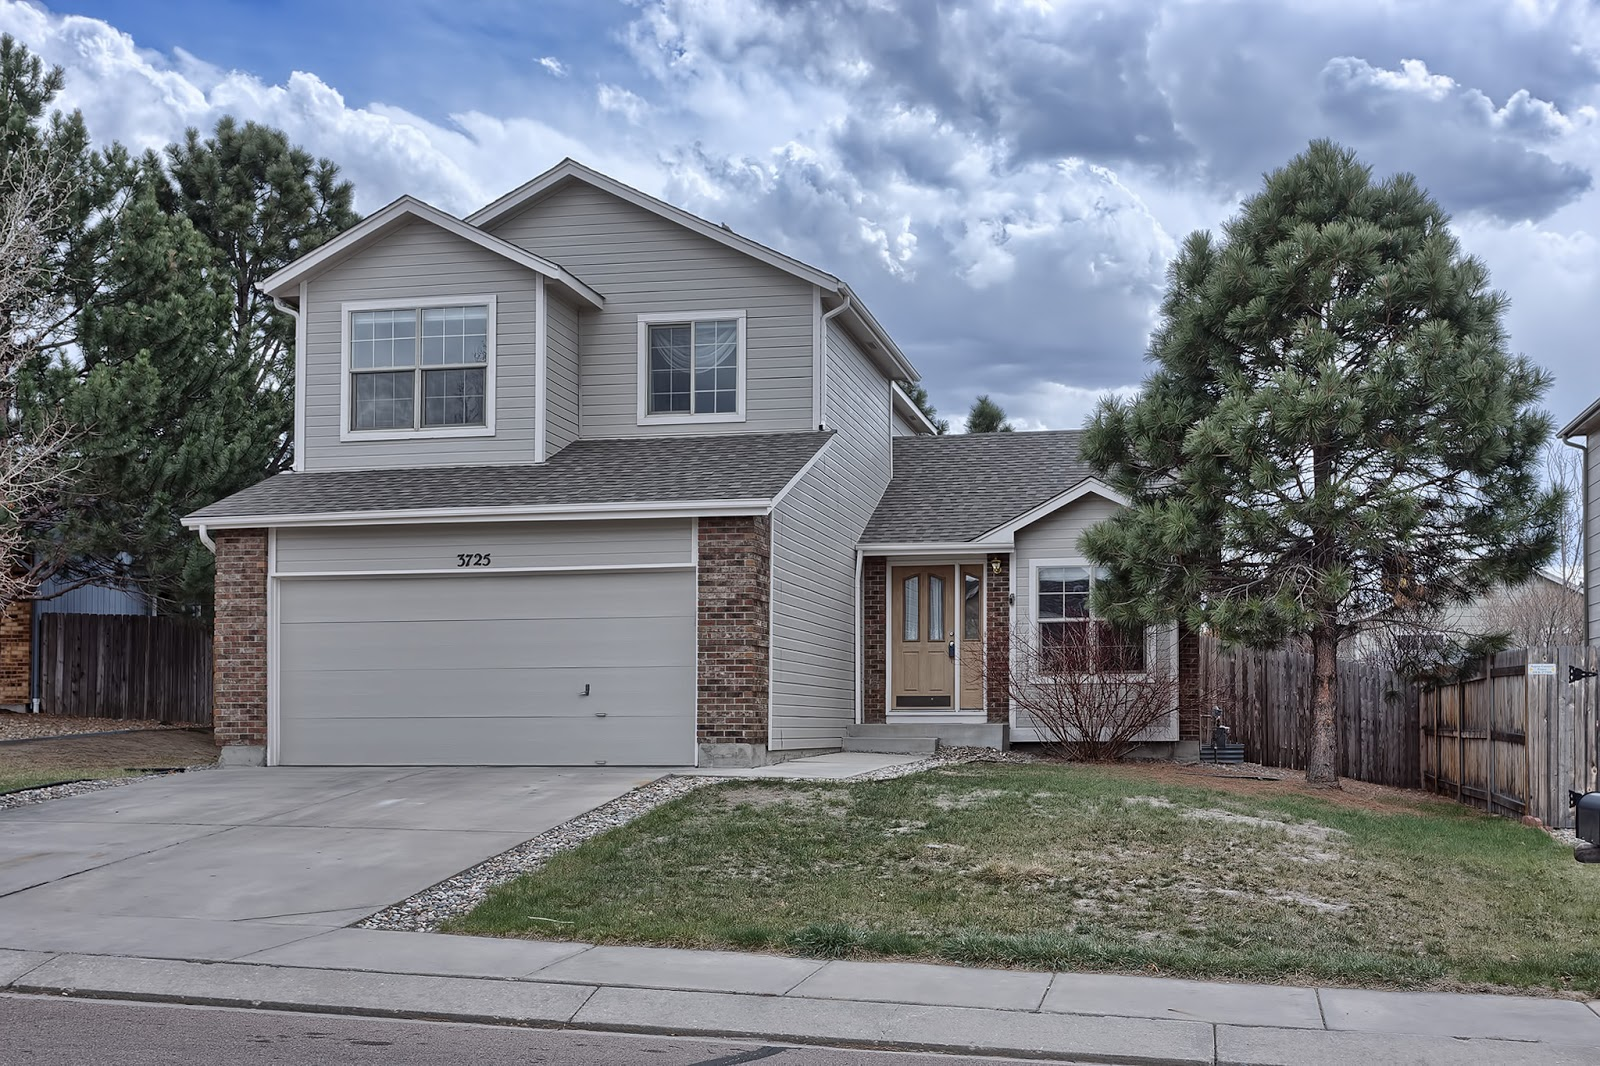 colorado springs real estate great 2 story home for sale in colorado springs